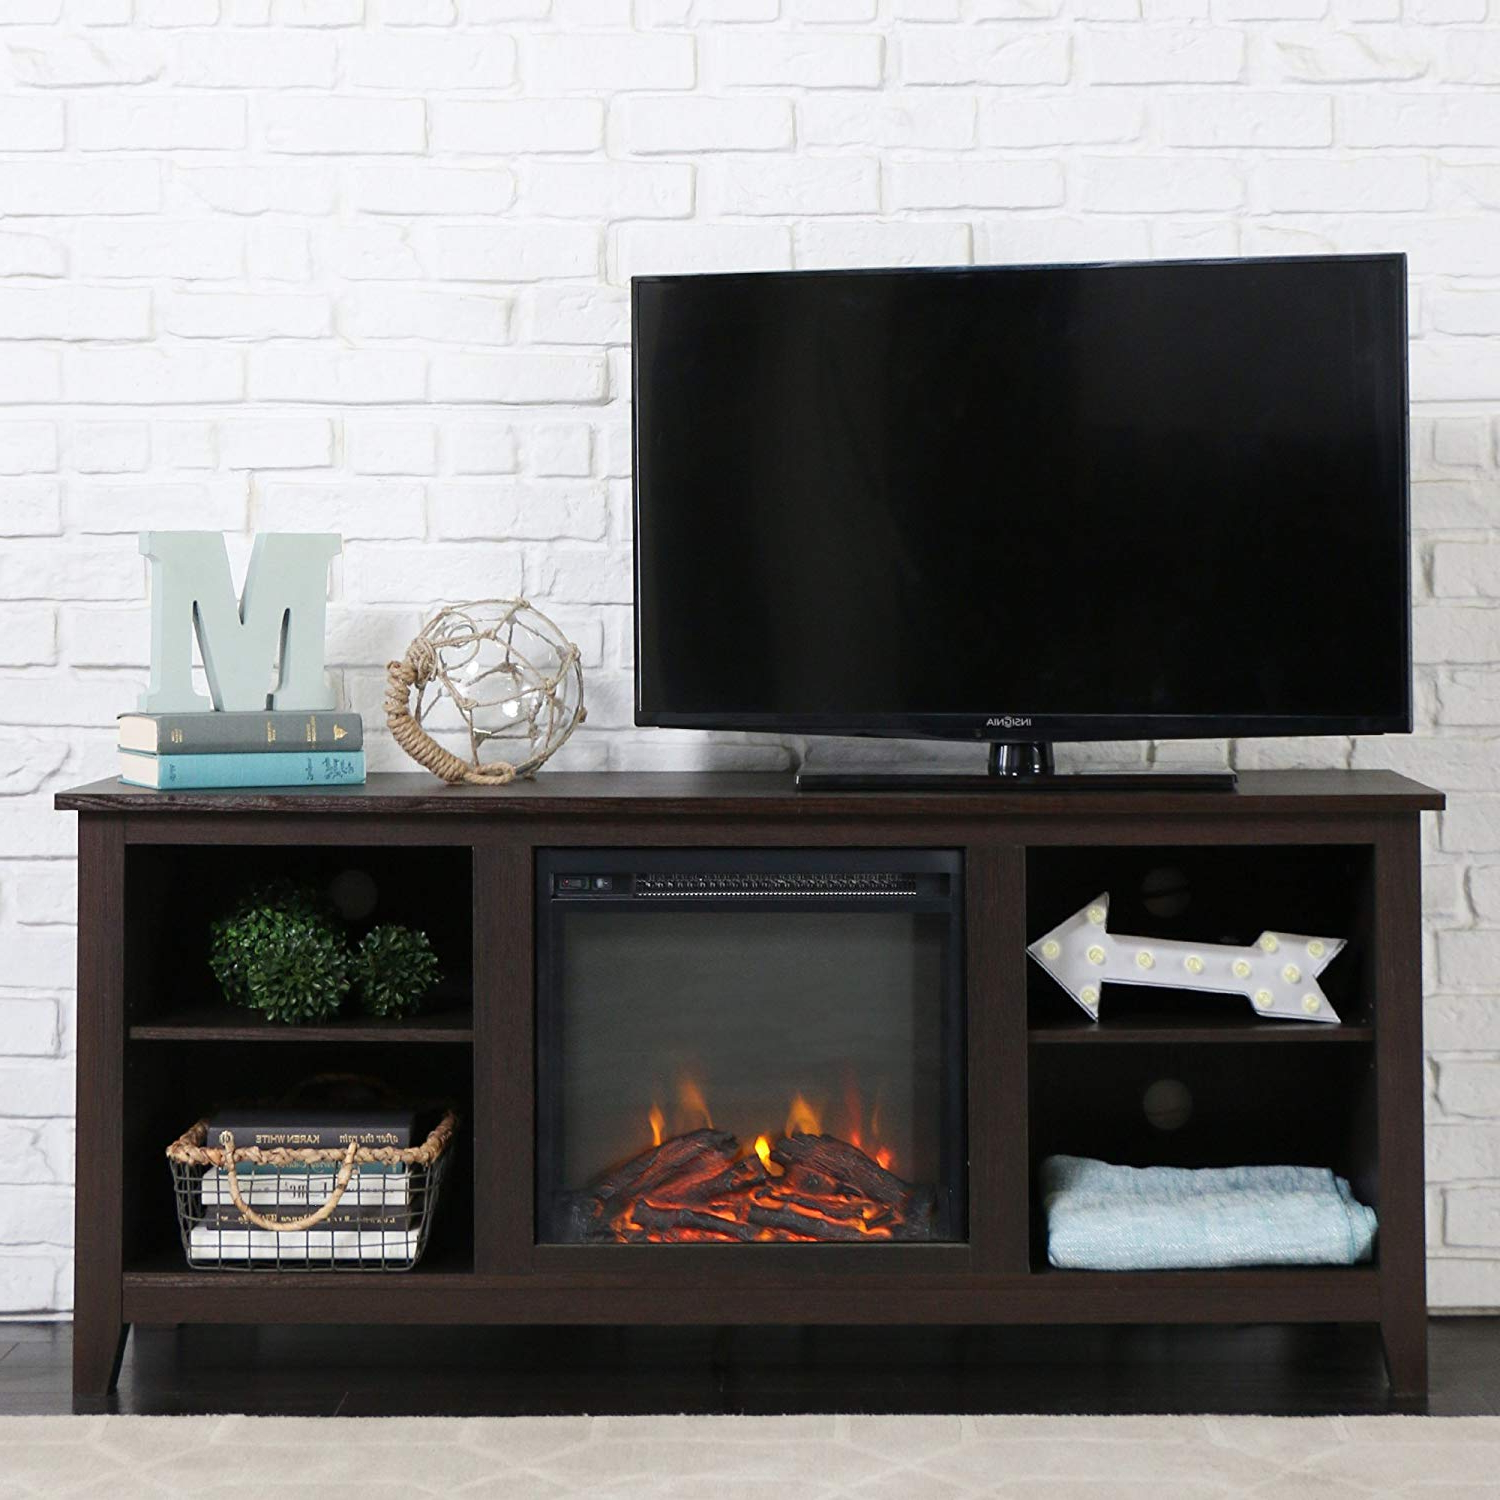 Most Recently Released Tv Stand With Fireplace Free Standing Electric Walmart 60 Inch In Corner 60 Inch Tv Stands (View 6 of 20)